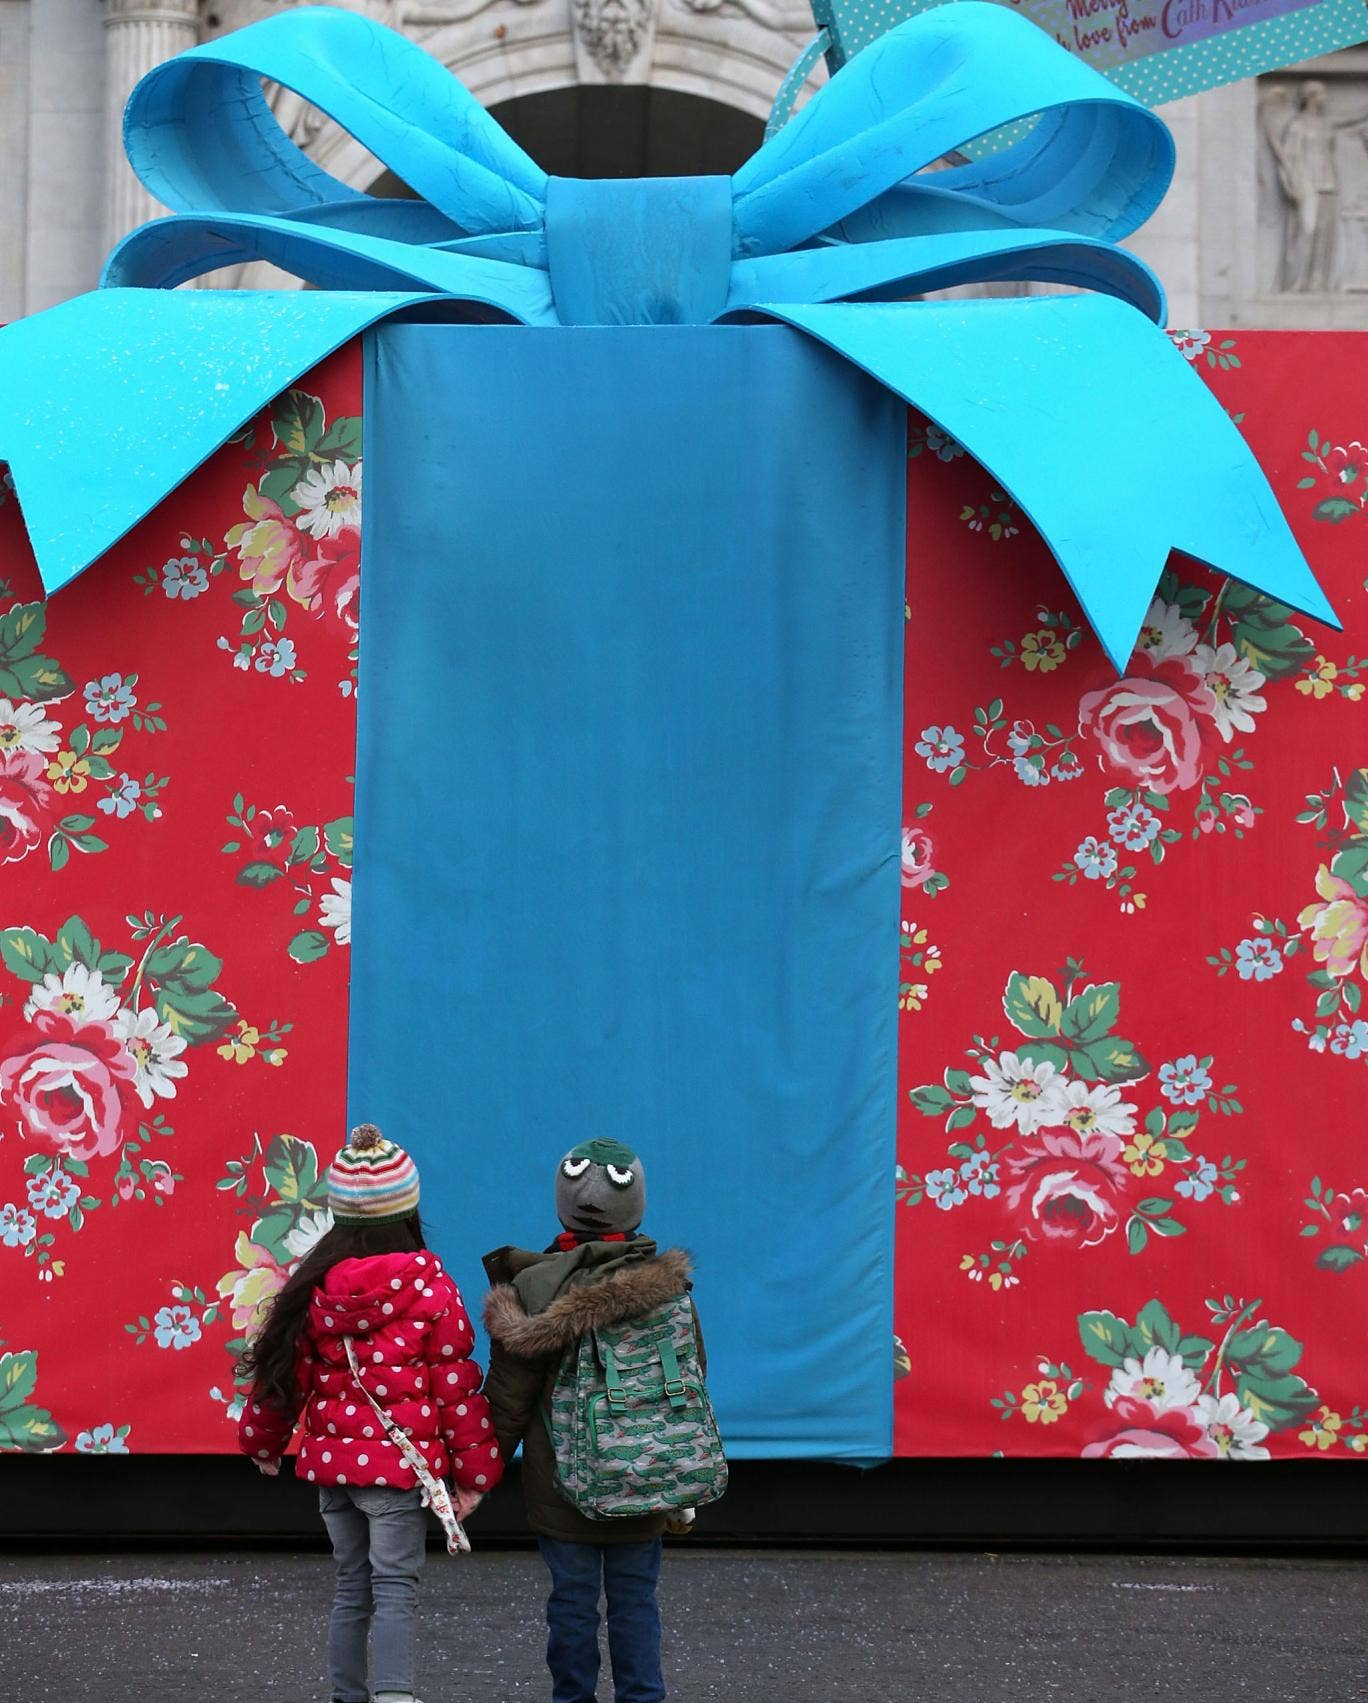 A US school board has moved to impose a $100 cap to limit 'out-of-control gift-giving' from parents to teachers